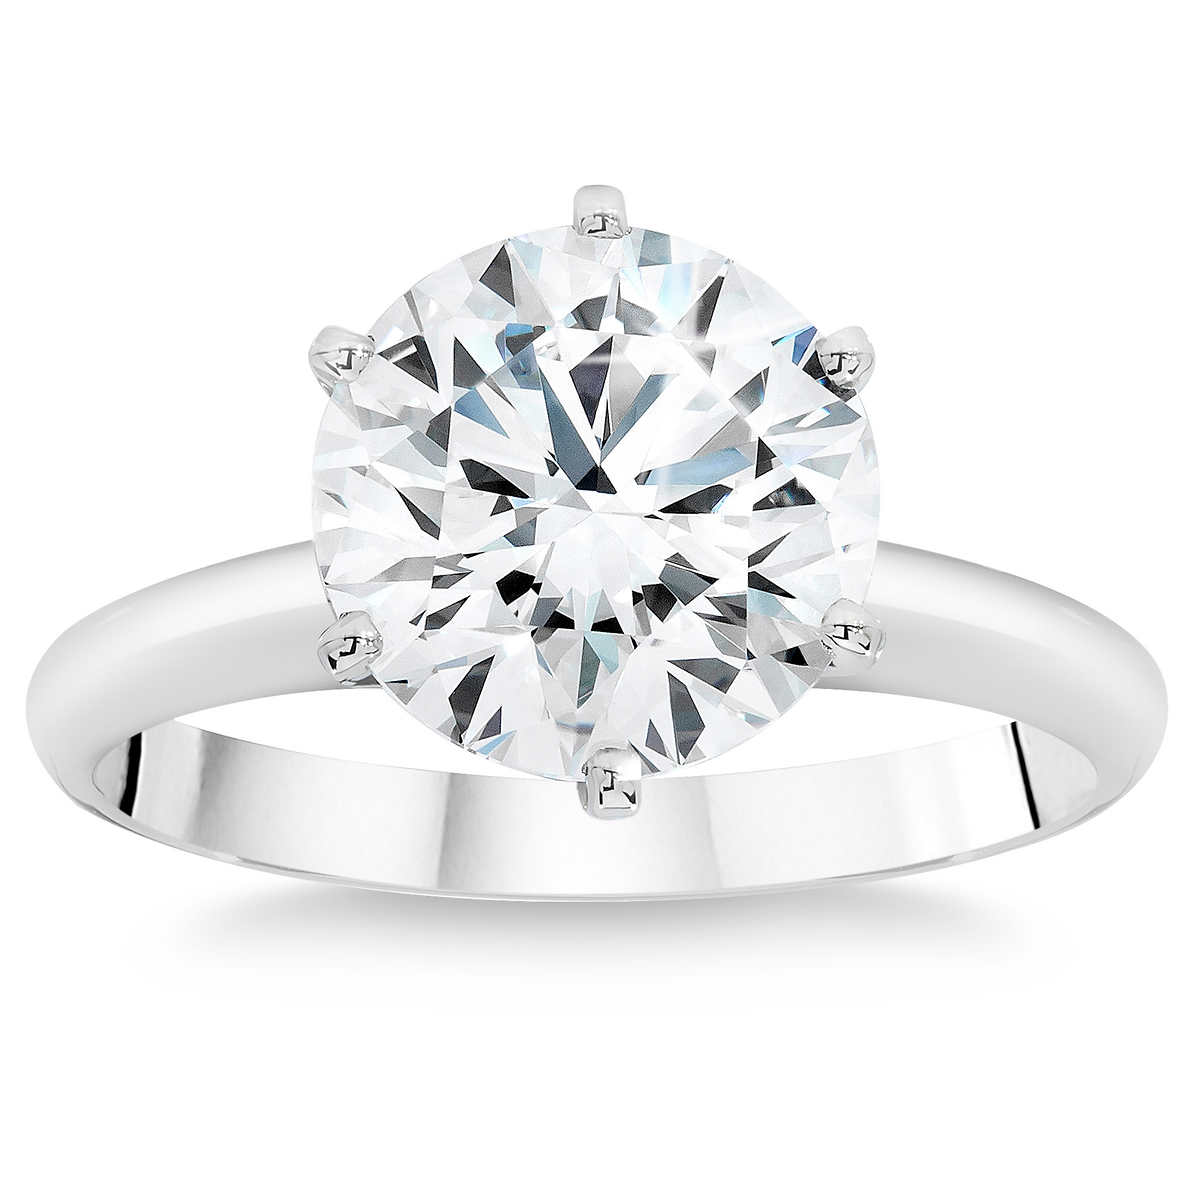 rings wedding rings dollars Round Brilliant 3 19 ct Internally Flawless G Color Diamond Solitaire Ring 99